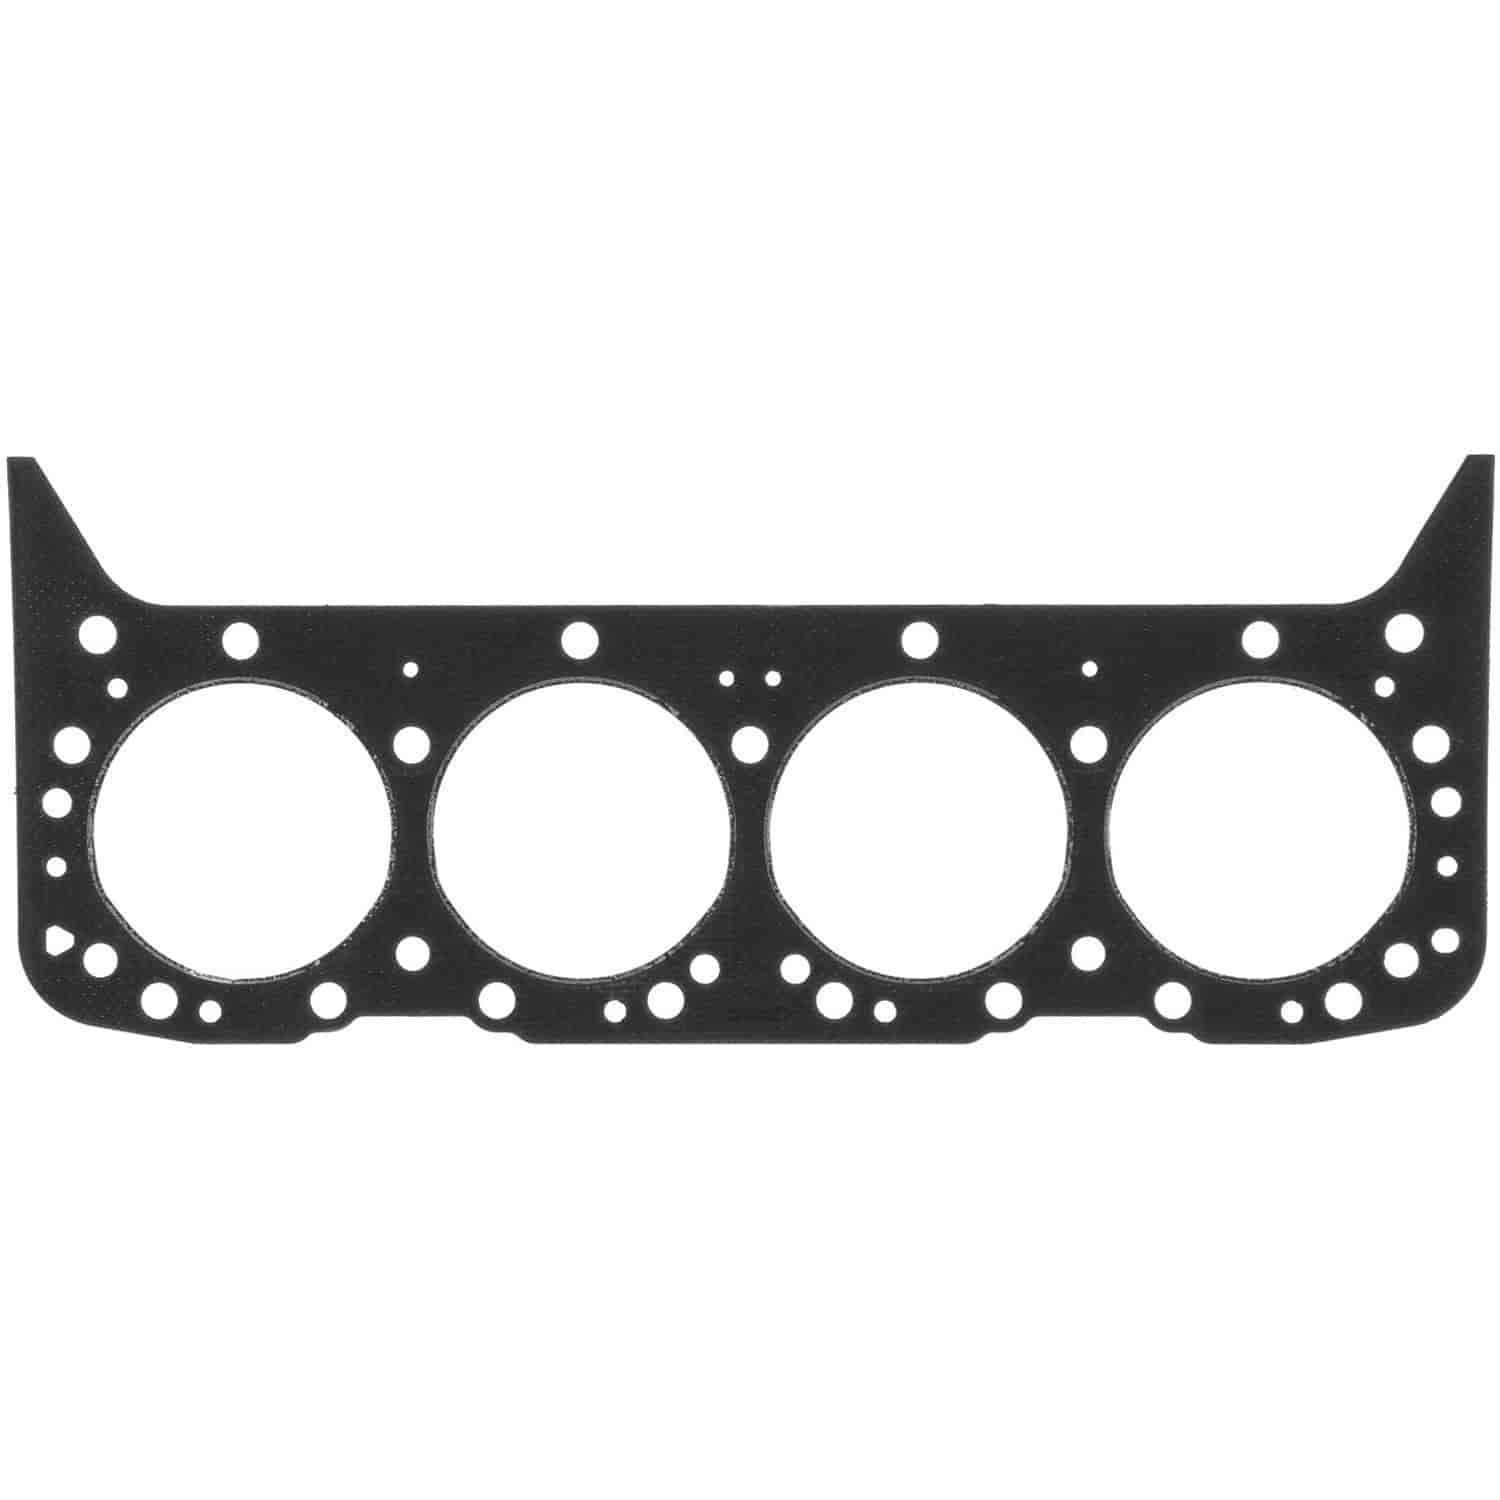 Clevite Mahle Vc Cylinder Head Gasket Small